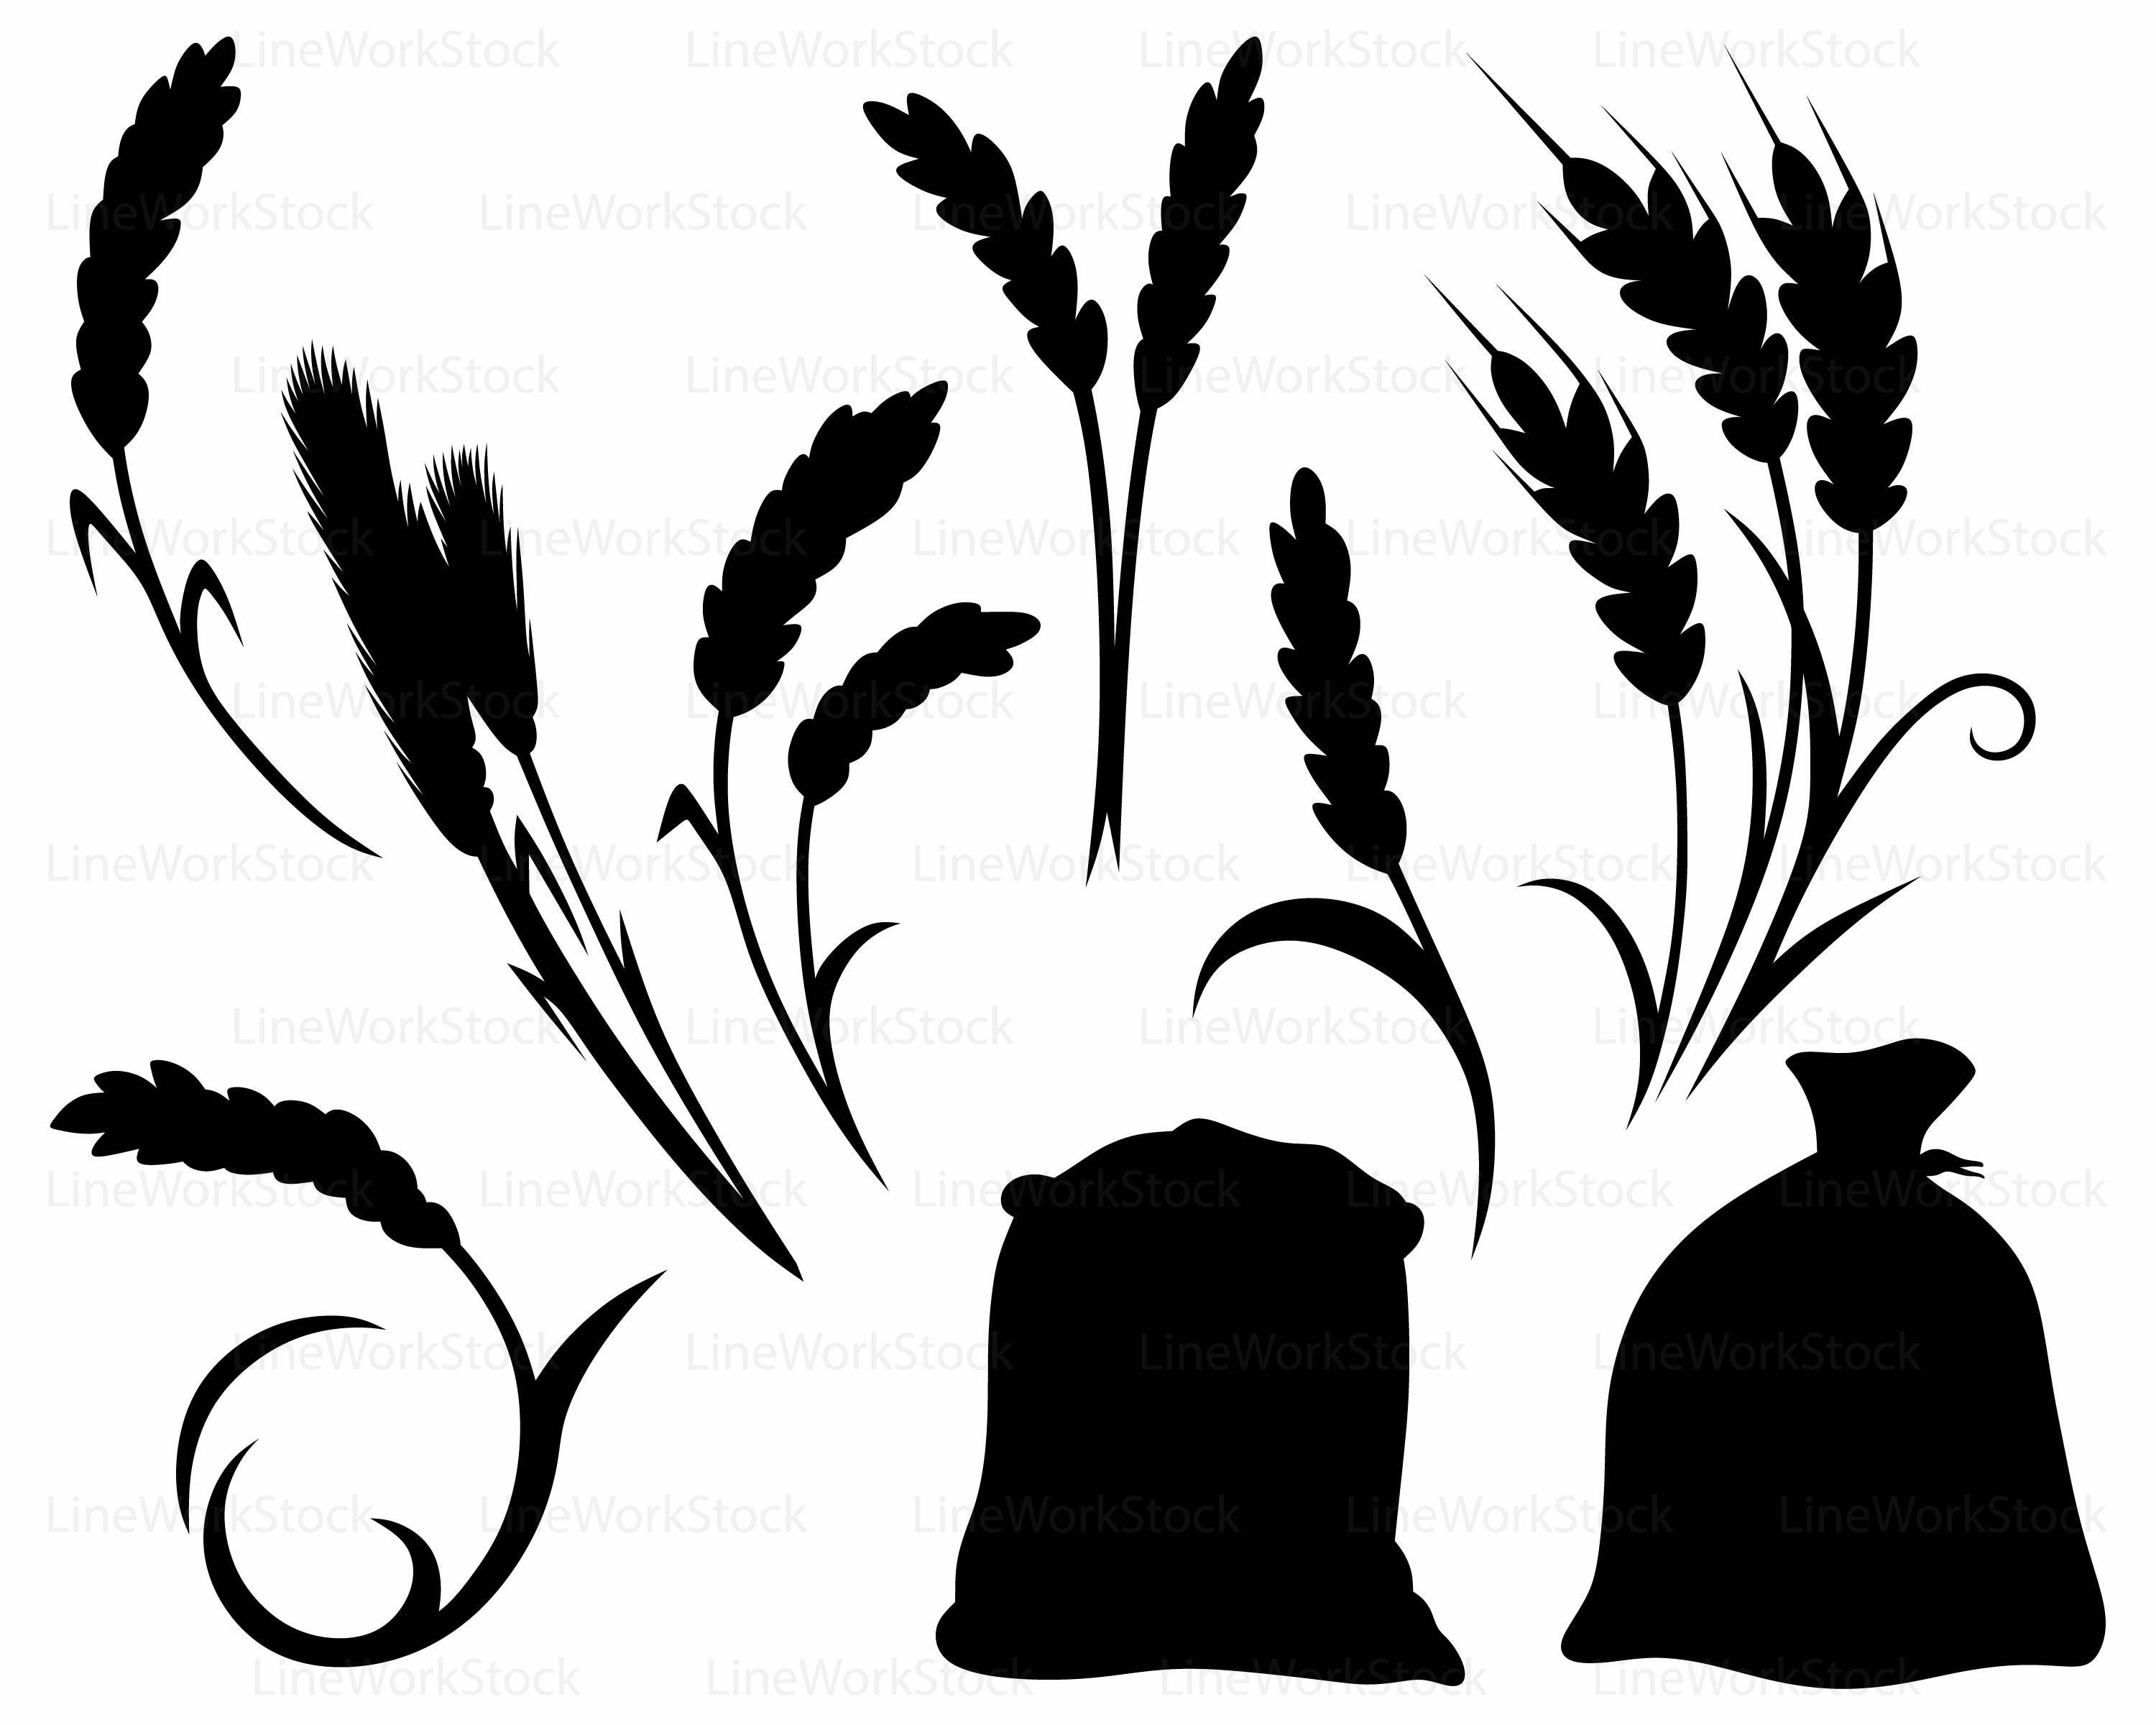 Wheat strand clipart jpg royalty free library Wheat Clipart | Free download best Wheat Clipart on ... jpg royalty free library